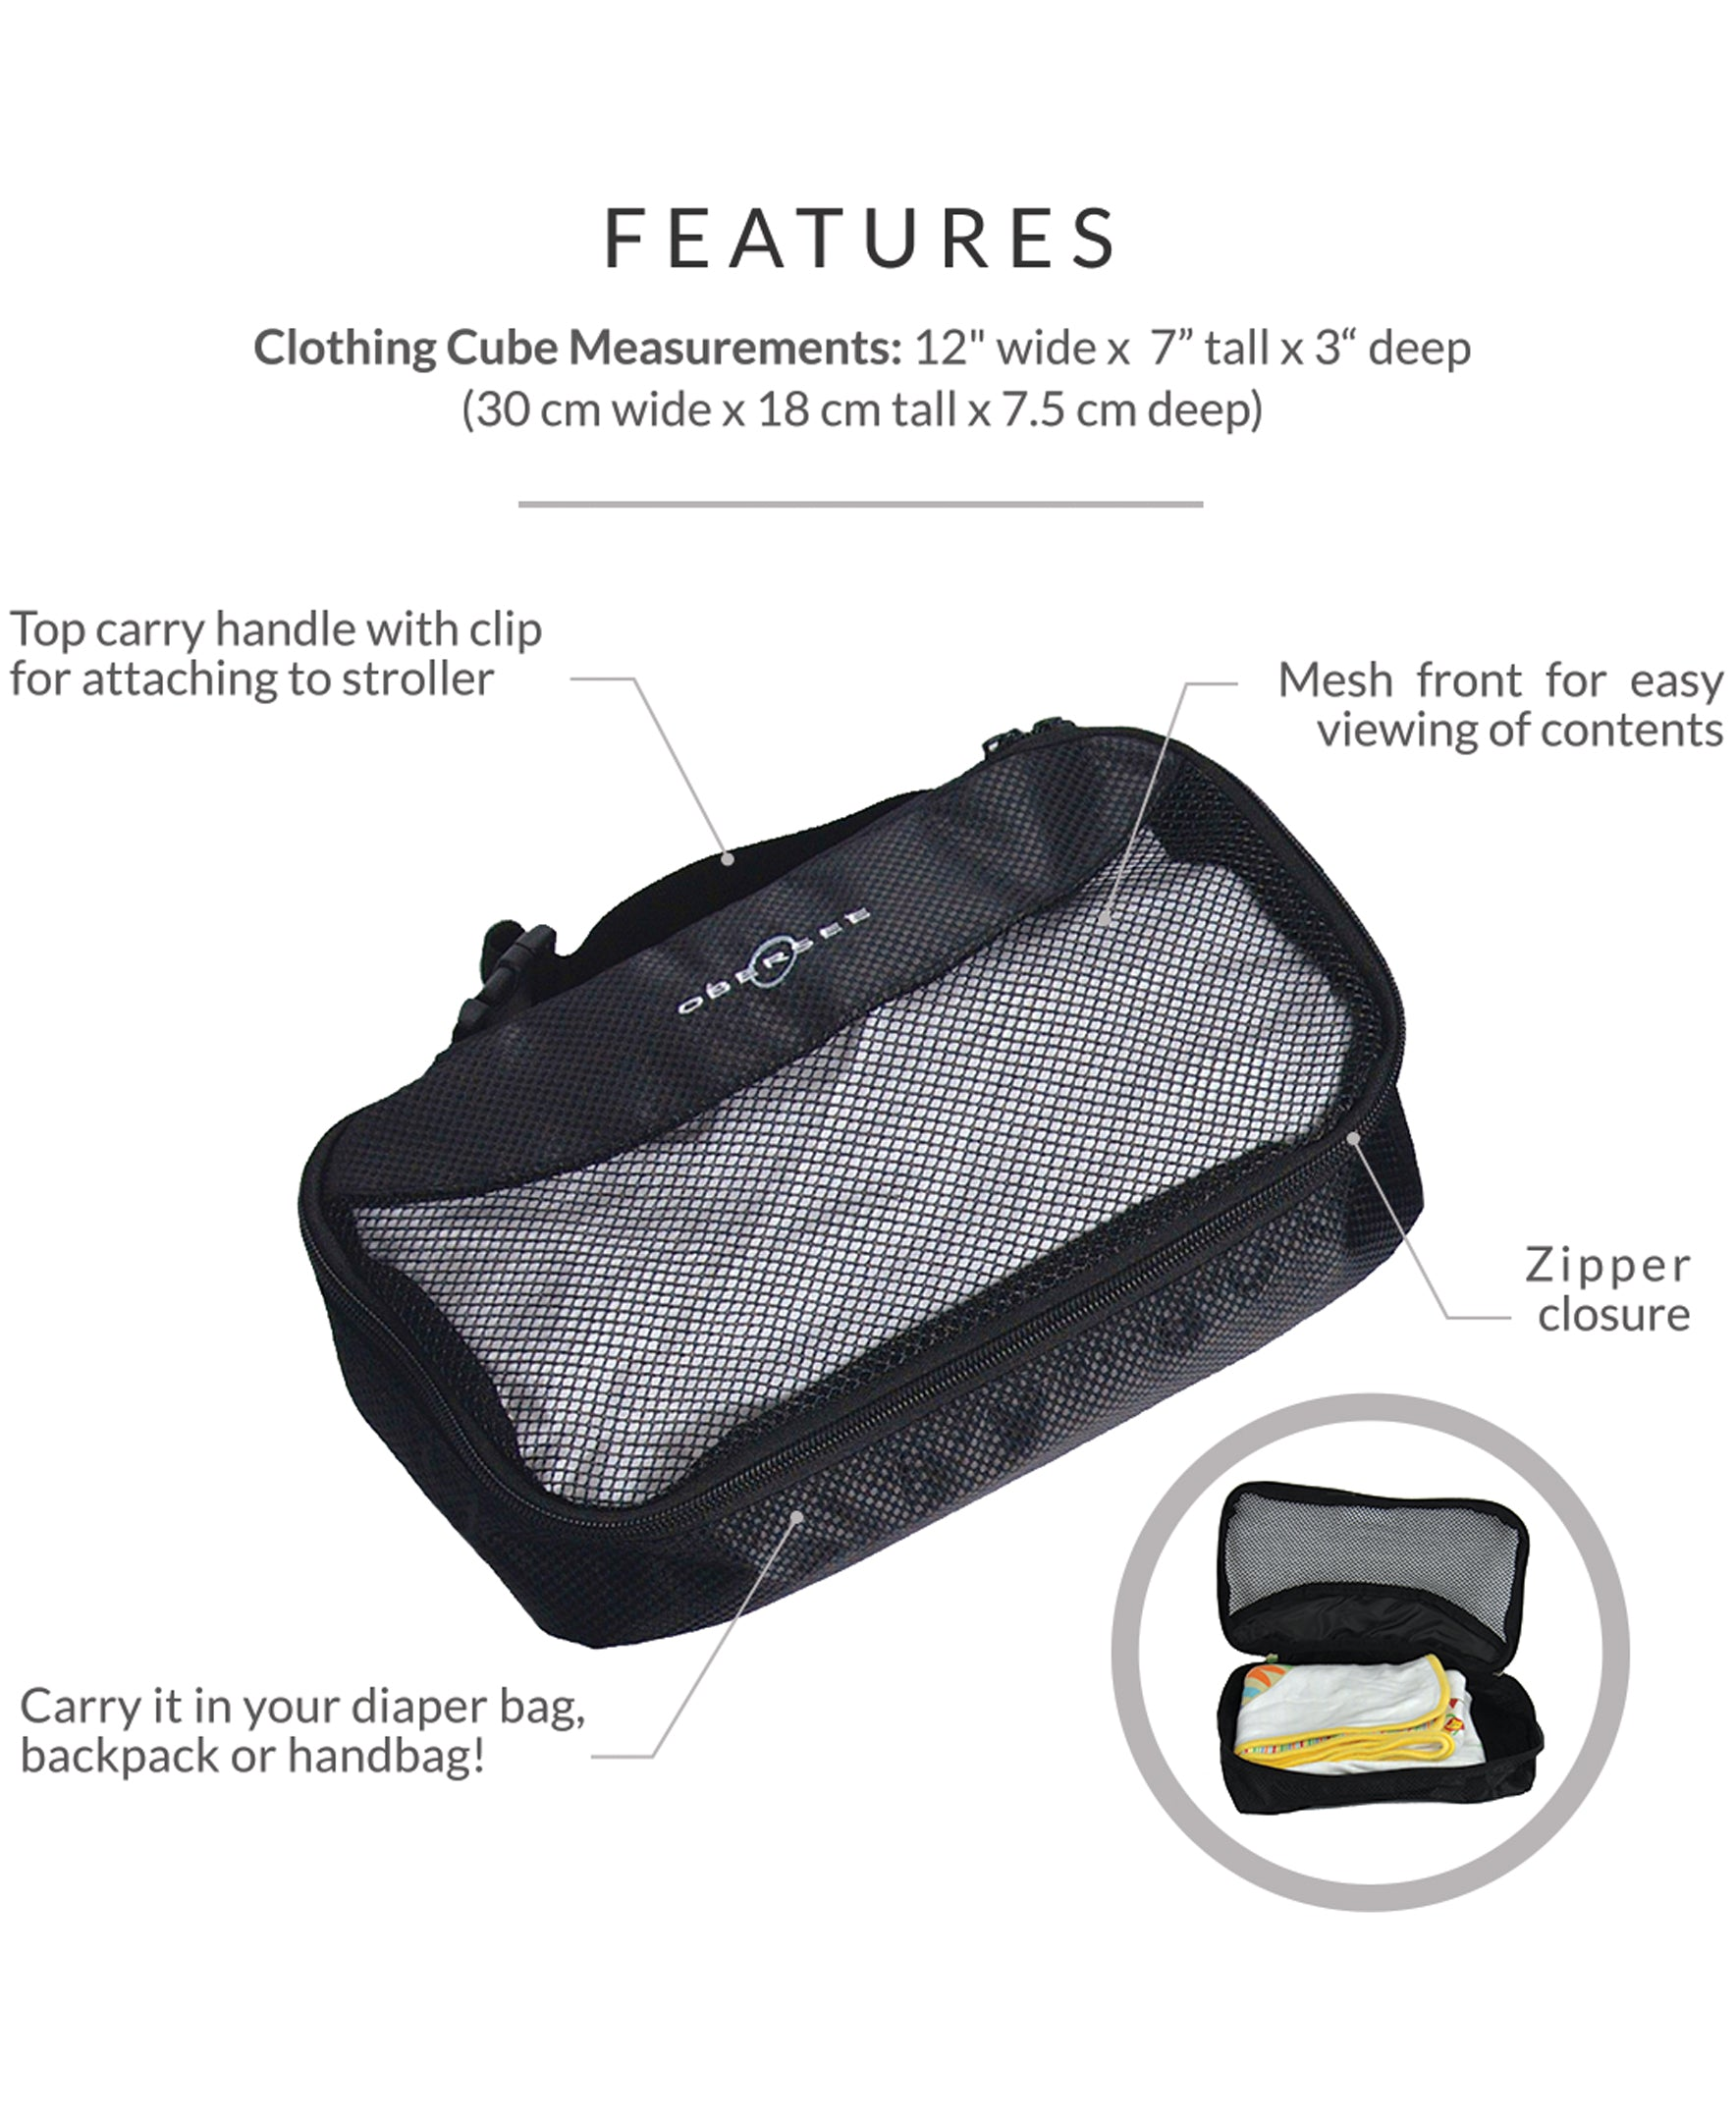 Obersee Diaper Bag Organizer with Clothing Cube | carry handle with clip for easy attachment to Baby Stroller | Black